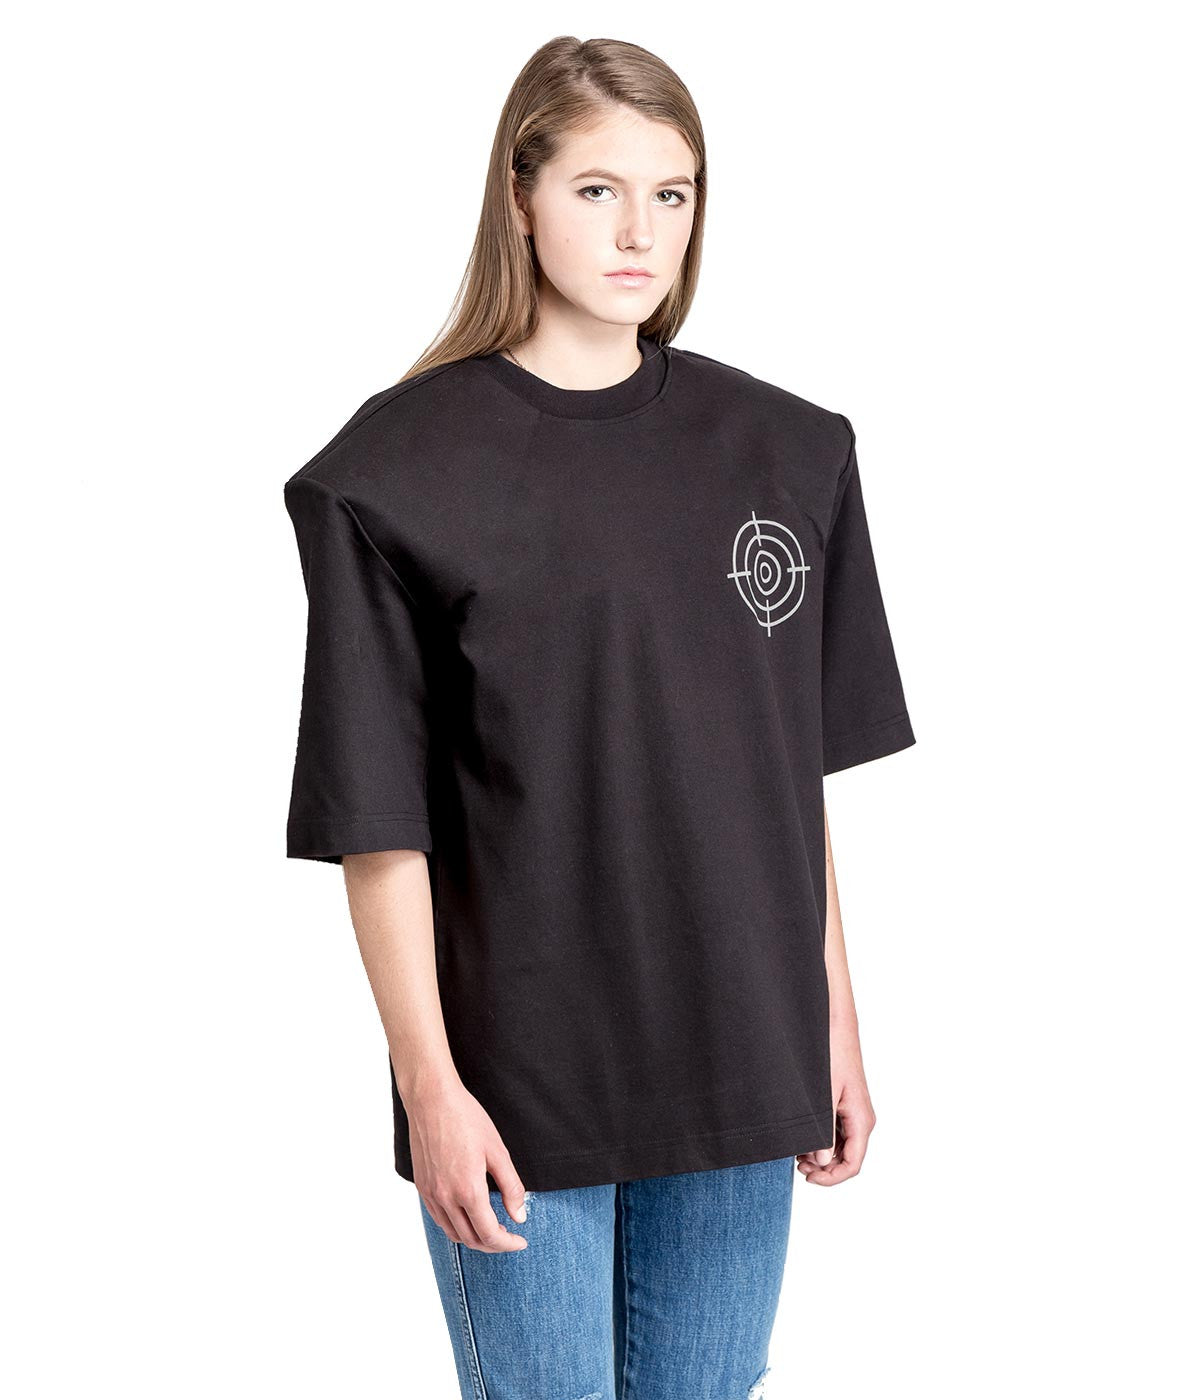 Black Gun Club Football Shoulder T-shirt